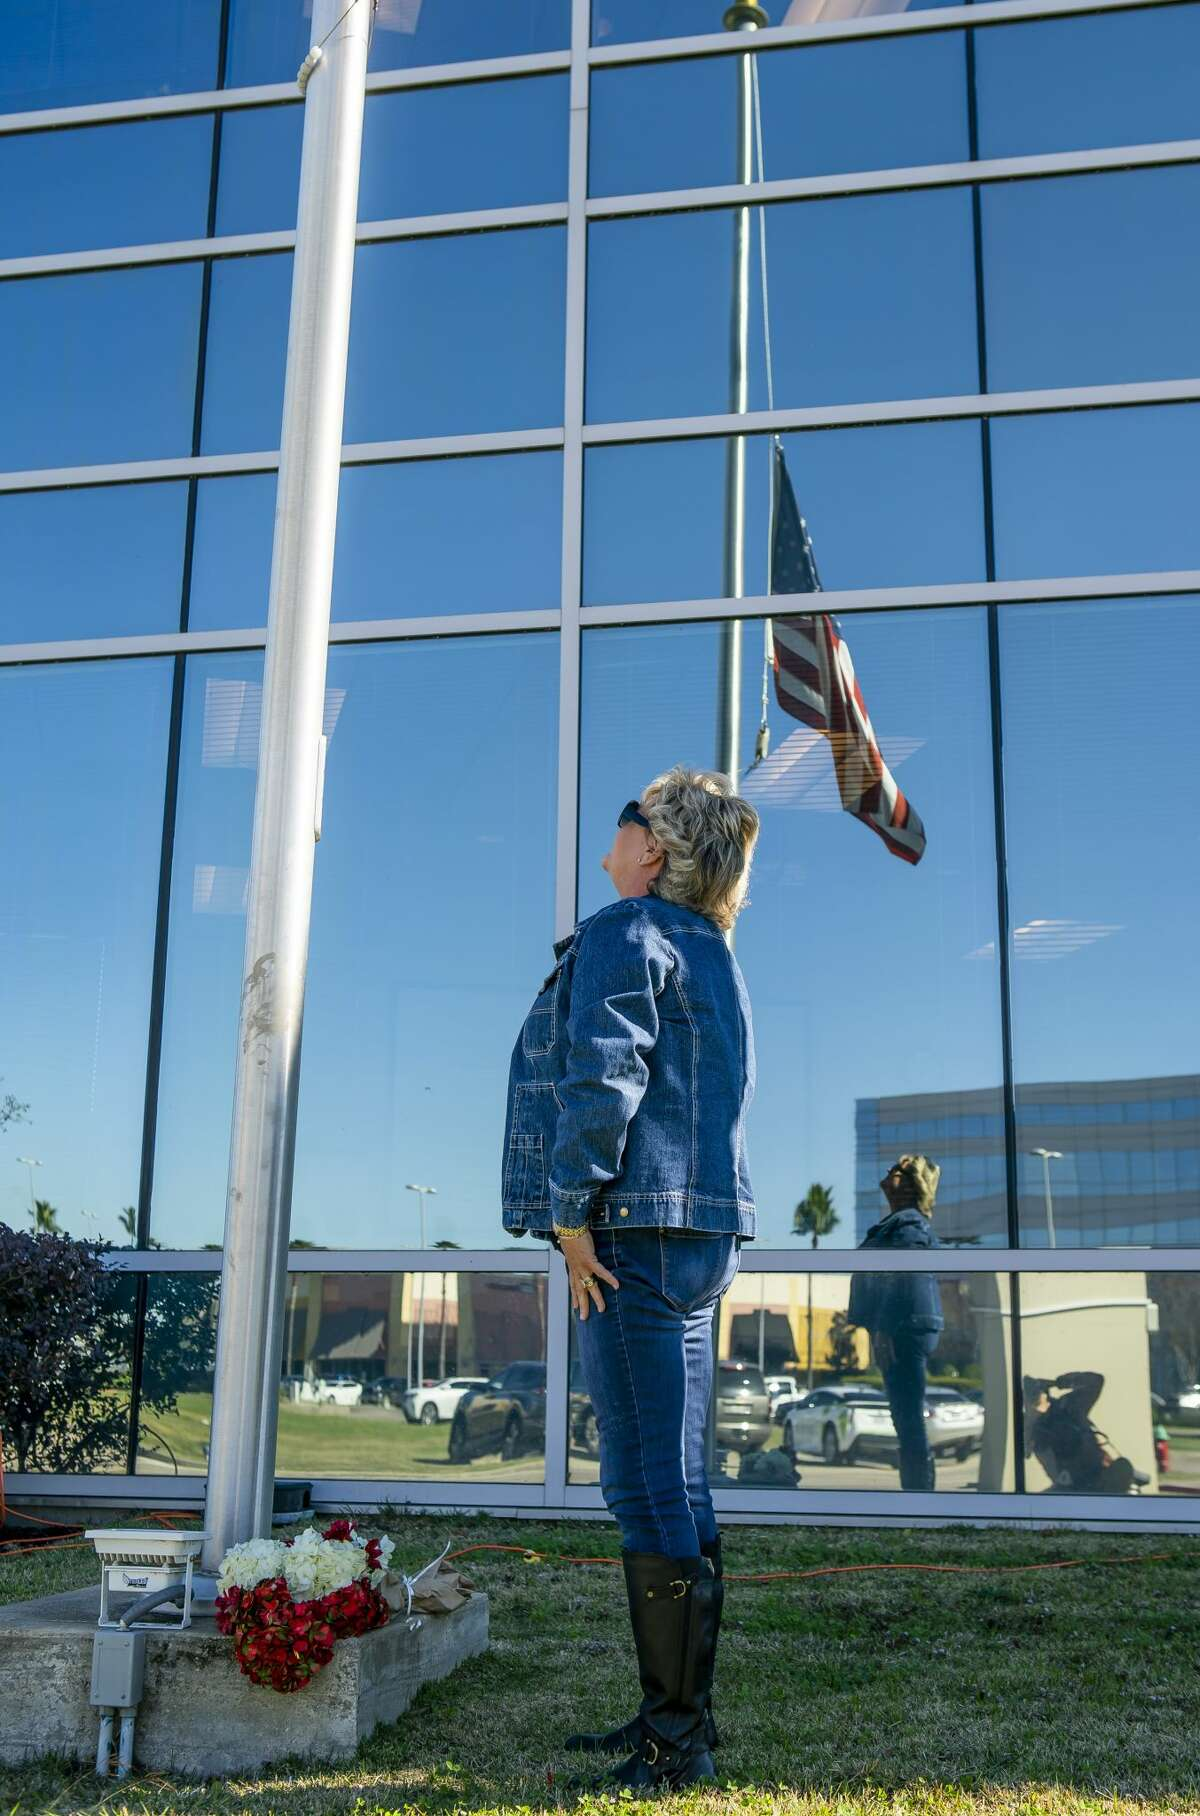 Robin Cortinas, of Taylor Lake, lays flowers at the American Flag at half staff in front of the building that houses the Nassau Bay City Hall and police department, Wednesday, Dec. 11, 2019. Nassau Bay Police Department Sgt. Kaila Sullivan was struck and killed by a car Tuesday night while trying to arrest a suspect. Law enforcement officials are currently searching for the suspect, 21-year-old Tavores Dewayne Henderson, who is now charged with felony murder.